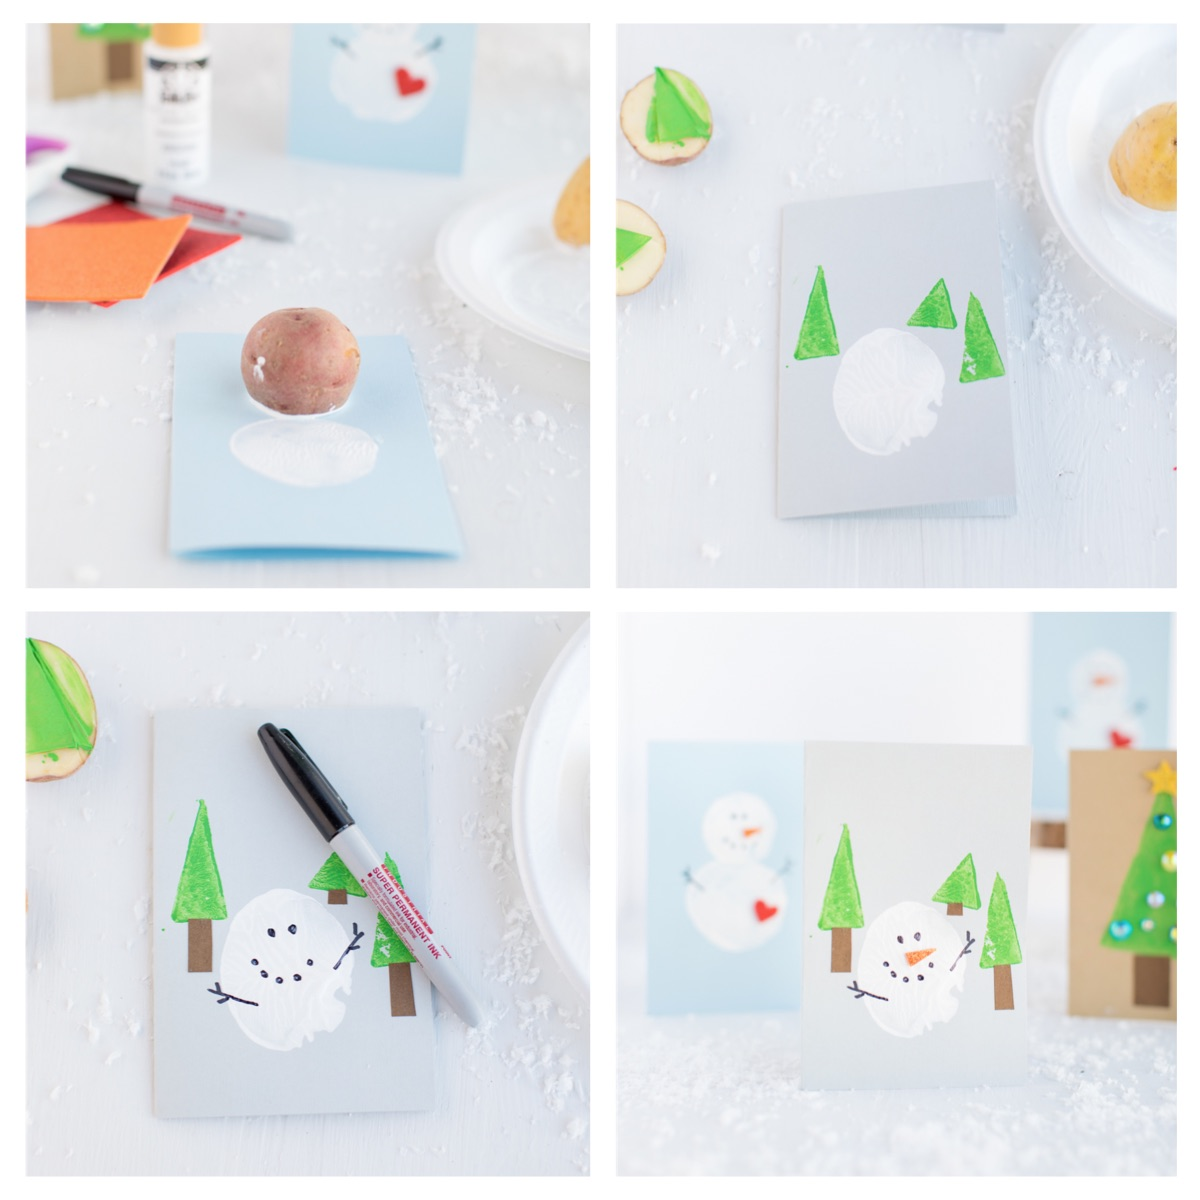 Potato Stamped Snowman Step by Step